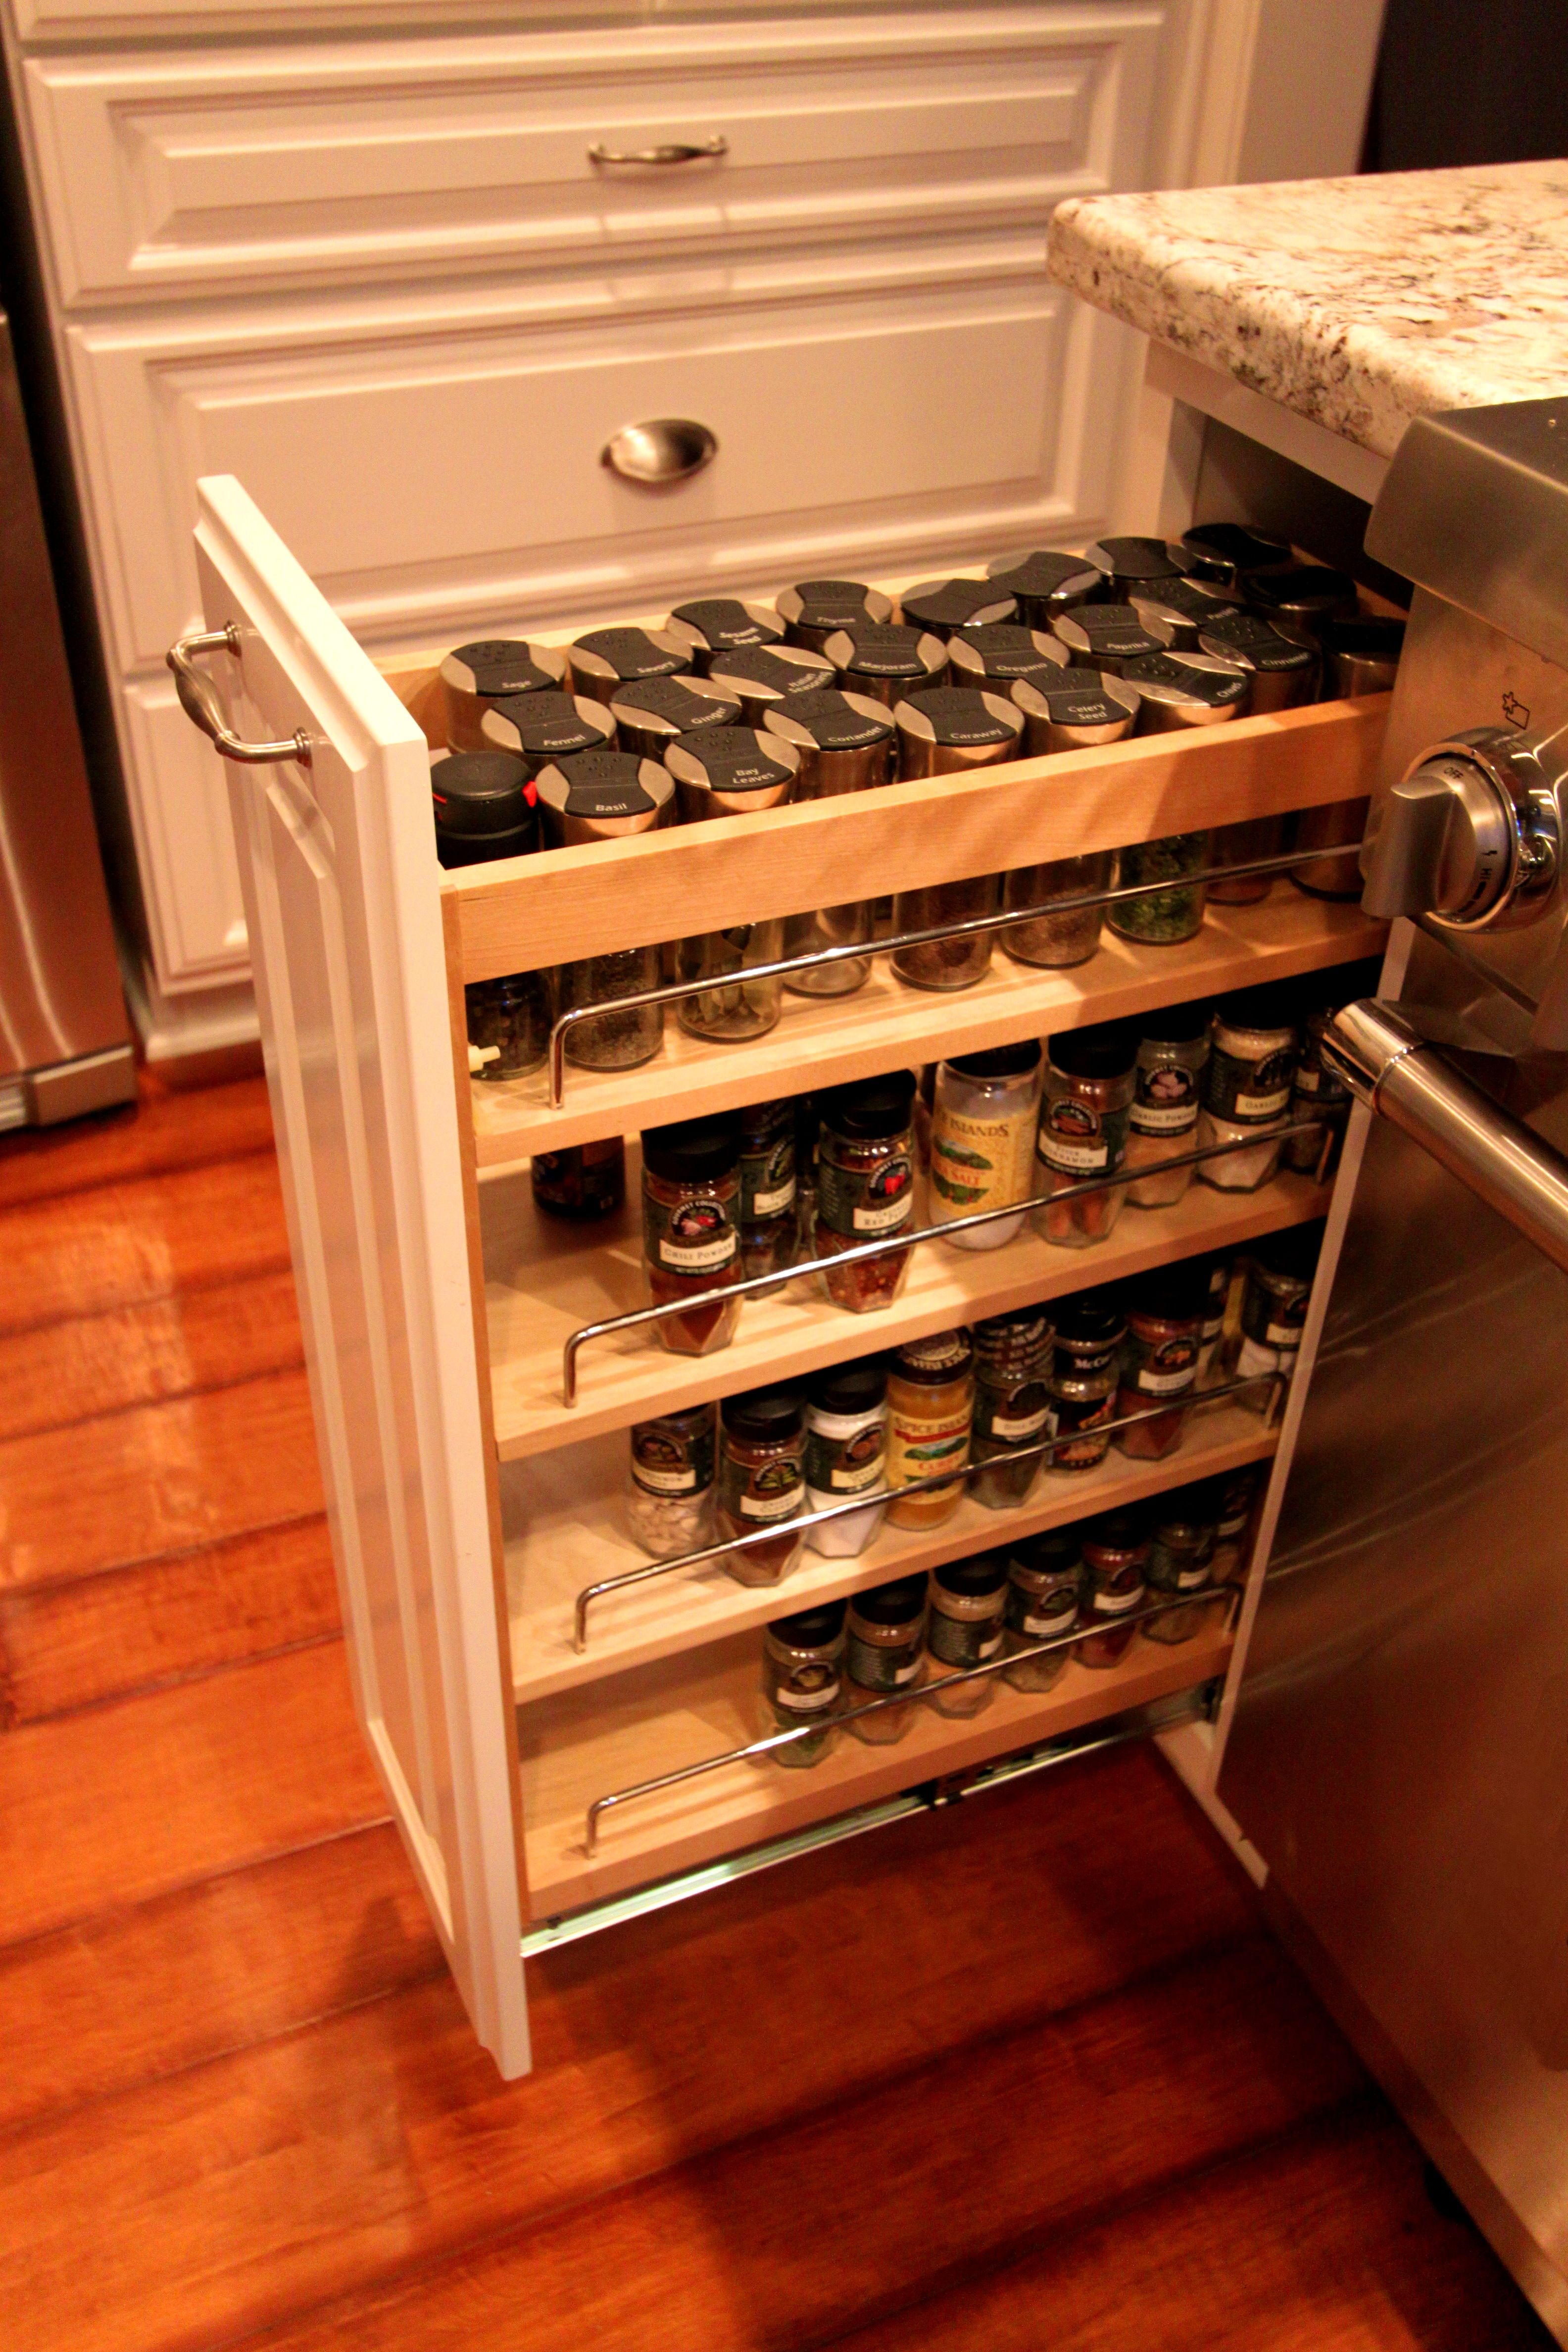 Kitchen breathtaking artwood pull out spice